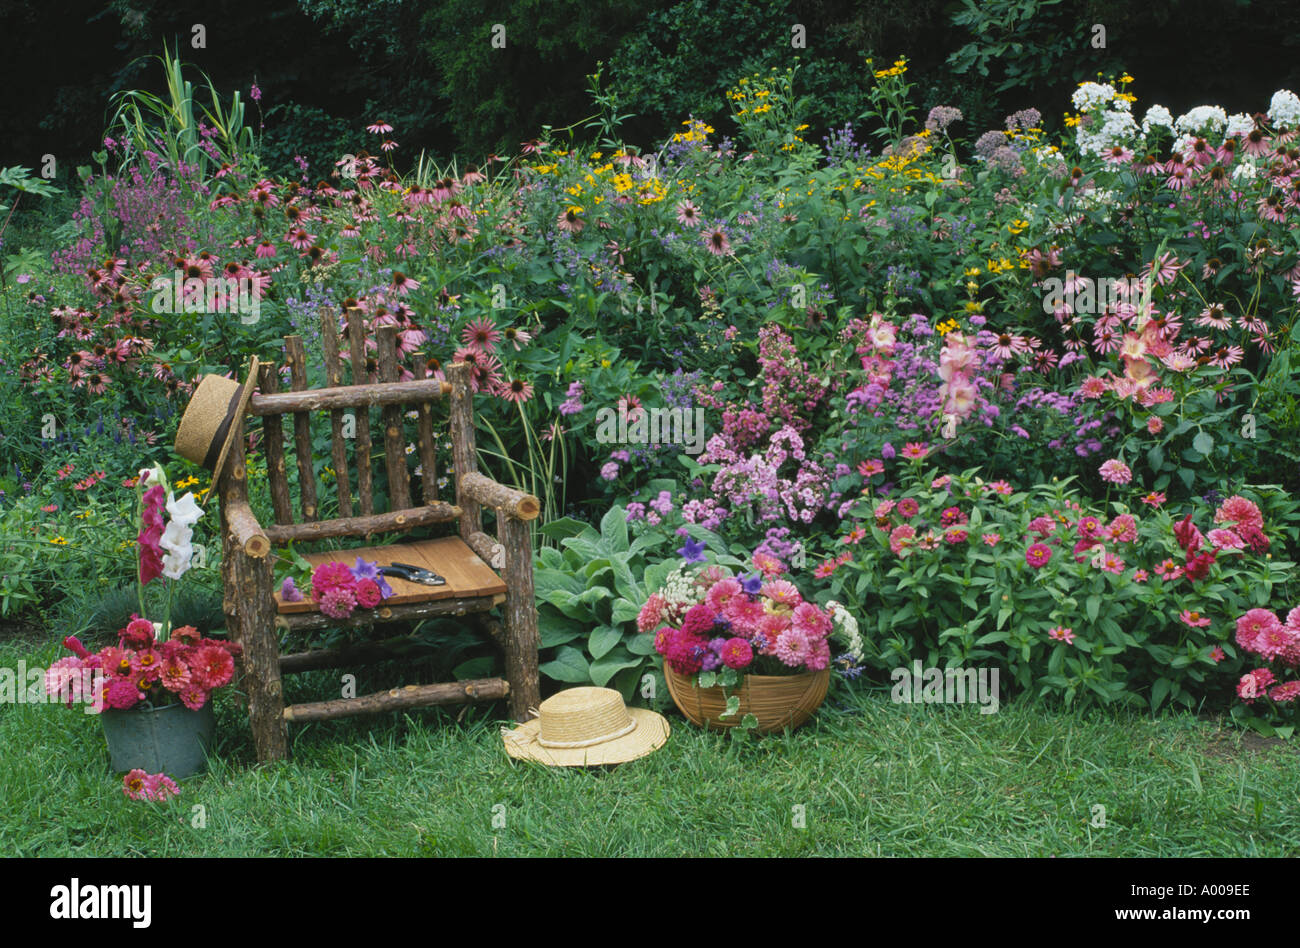 Romantic garden rustic chair in home flower garden of pinks and reds stock photo royalty free - Rustic flower gardens ...